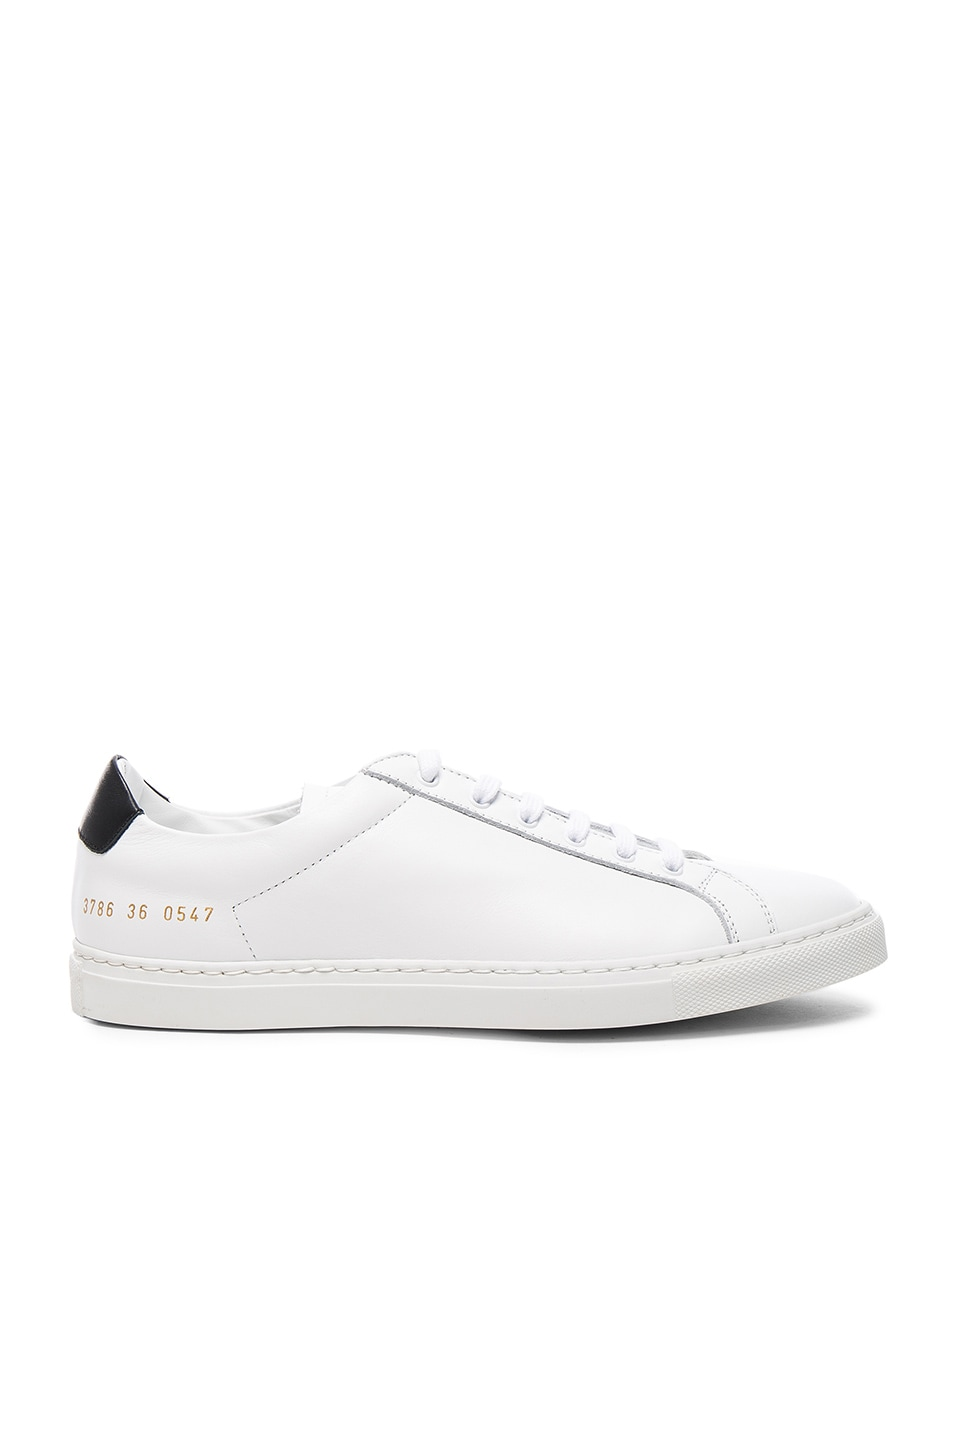 COMMON PROJECTS LEATHER ACHILLES RETRO LOW IN WHITE